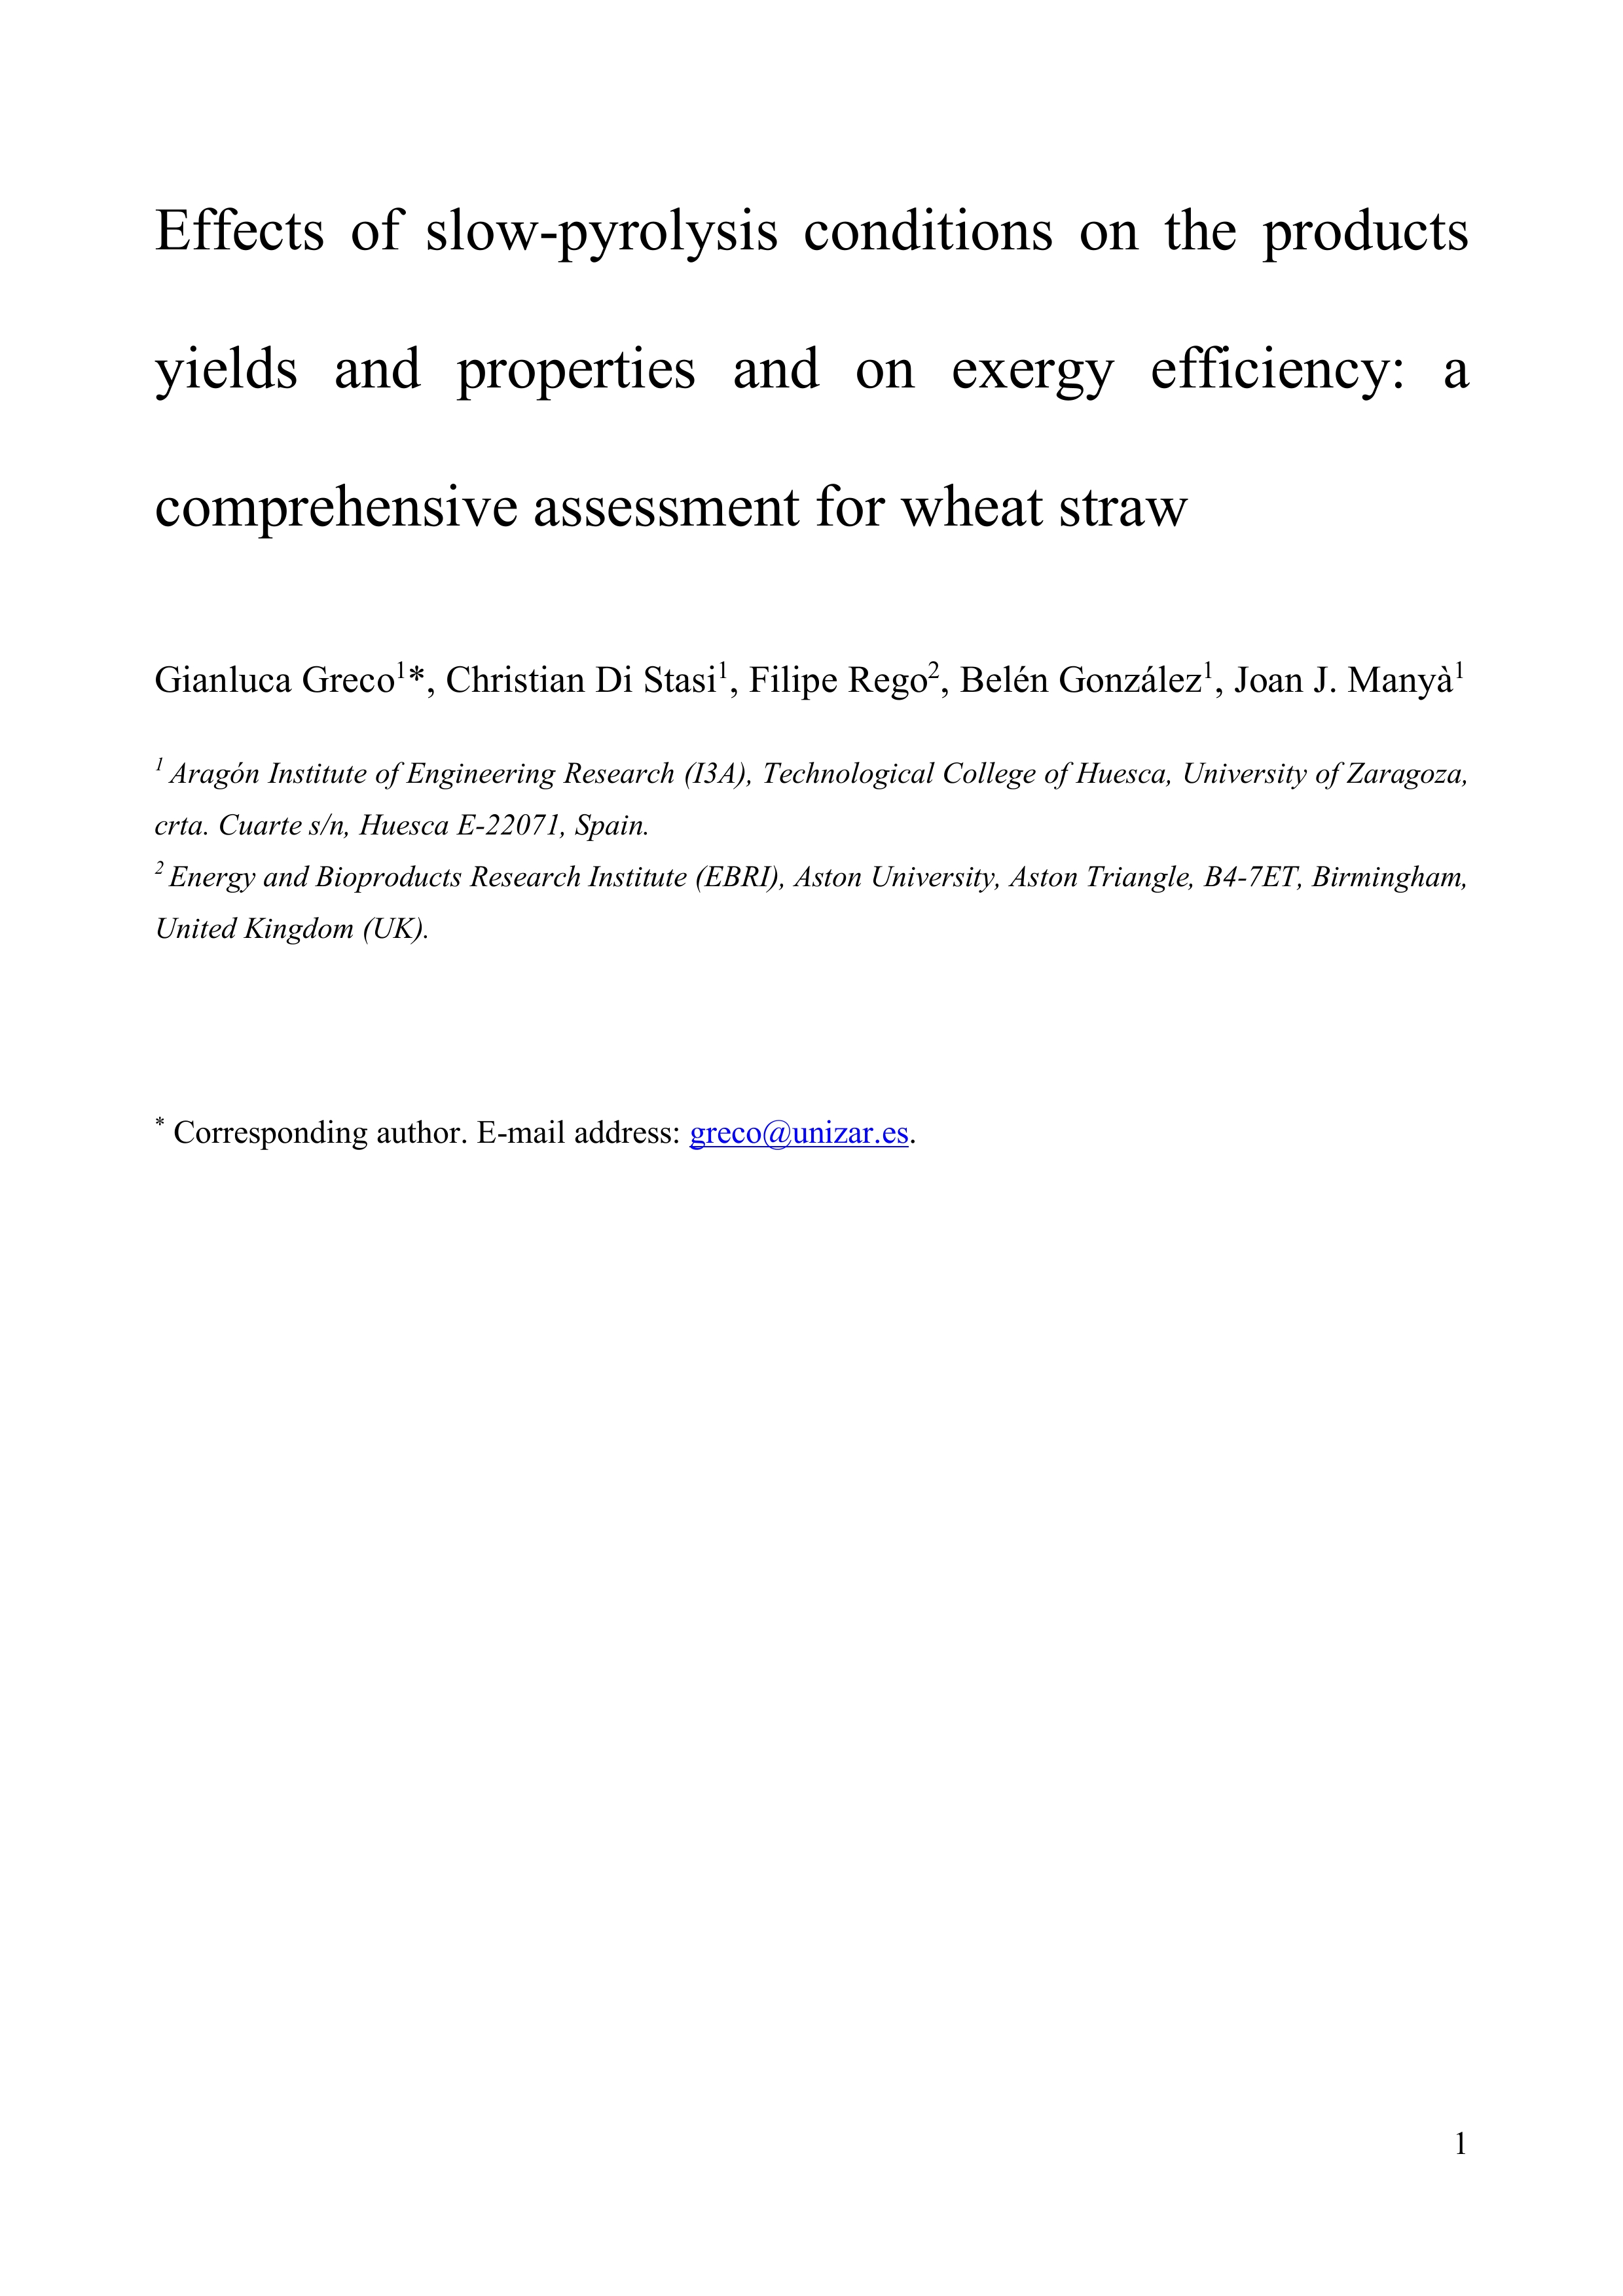 Effects of slow-pyrolysis conditions on the products yields and properties and on exergy efficiency: A comprehensive assessment for wheat straw